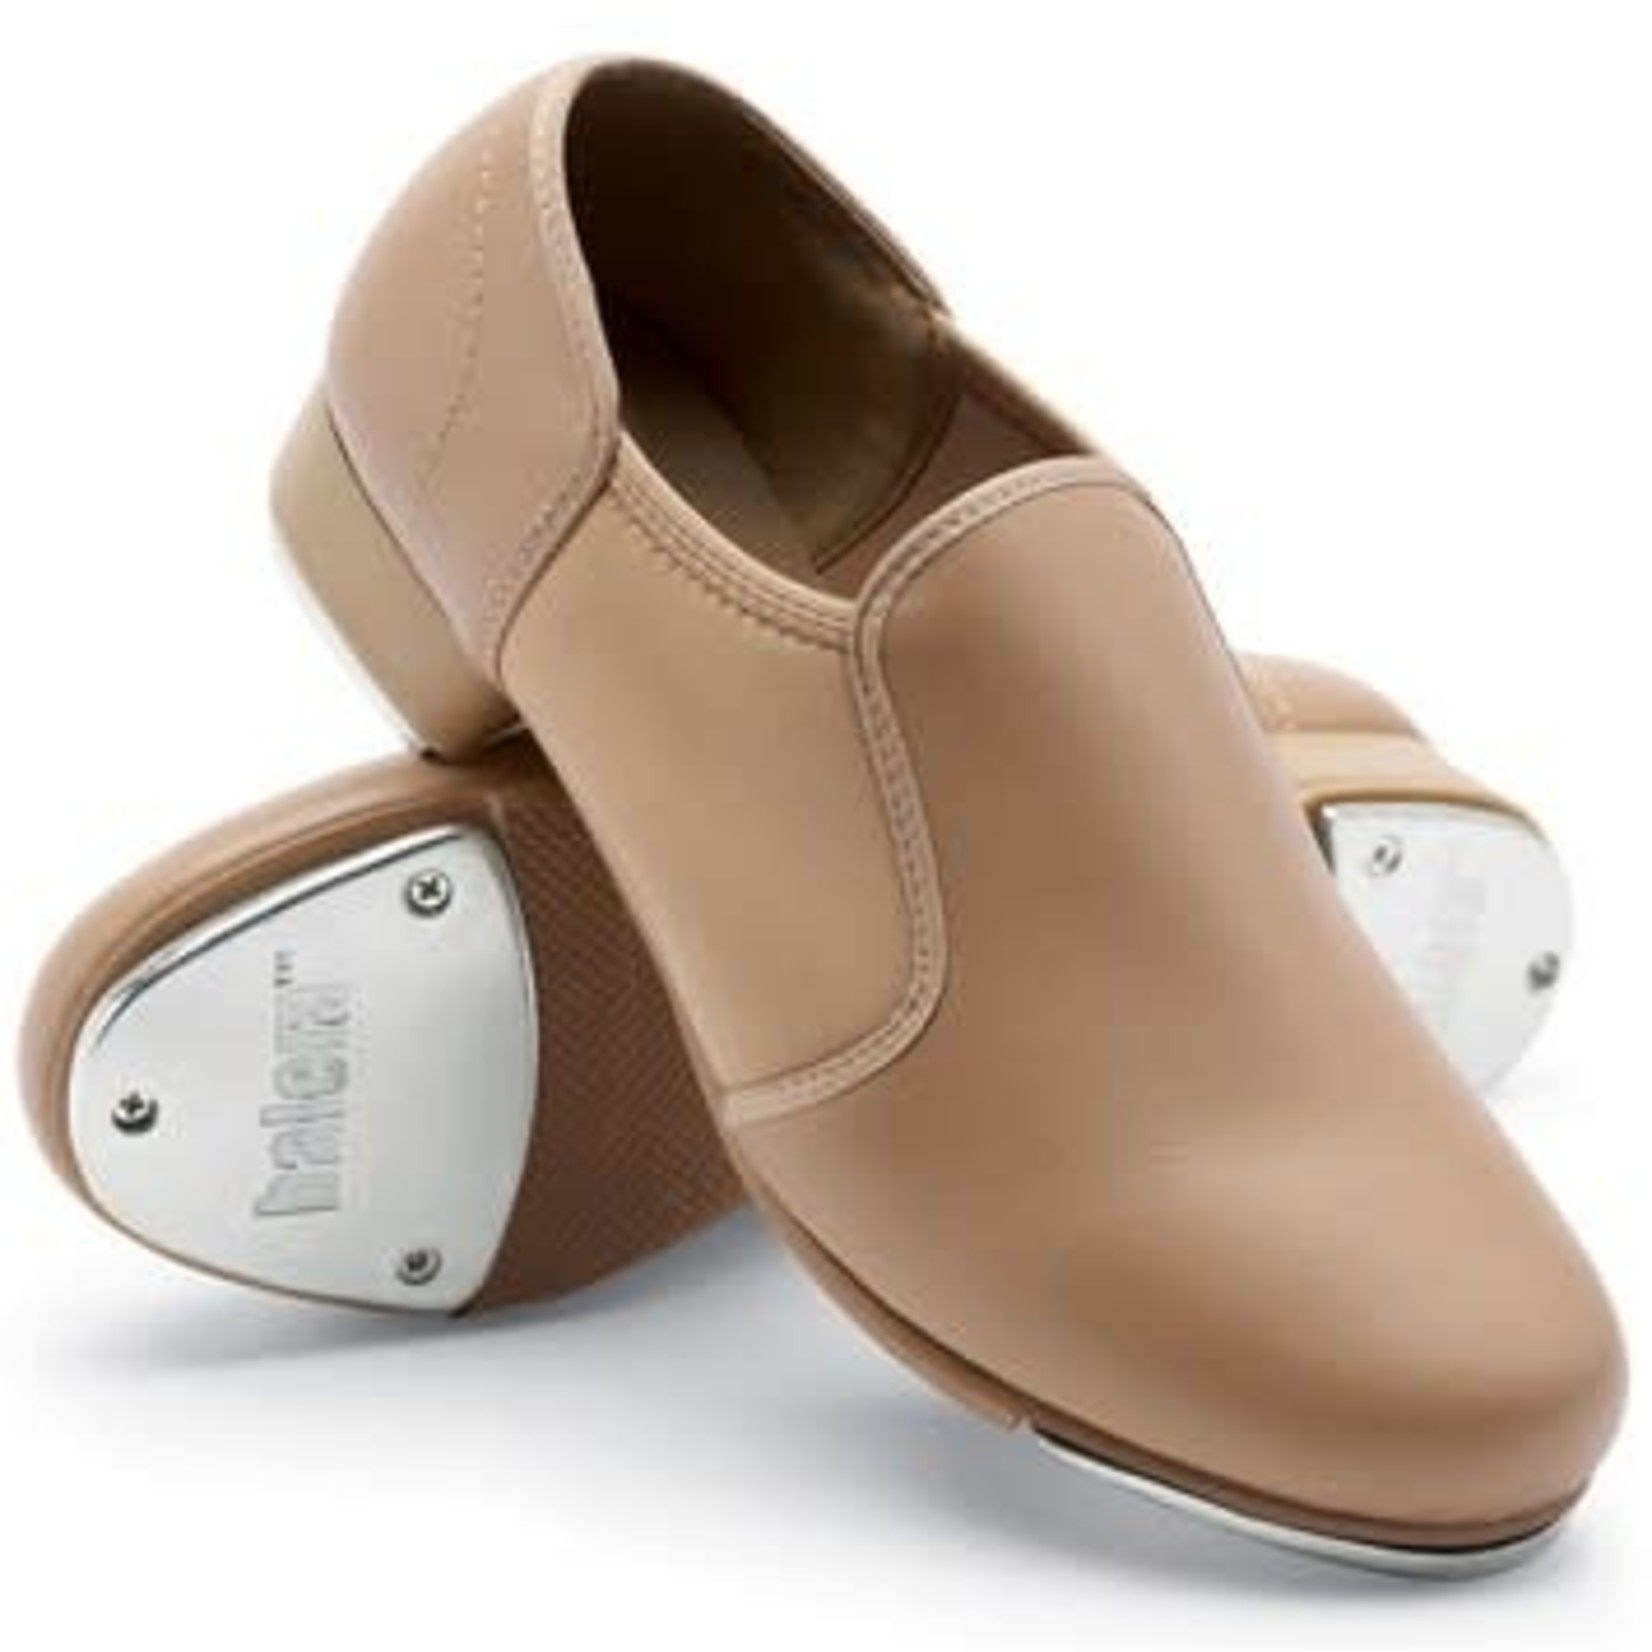 Balera Balera B150 Slip-on Tap shoe